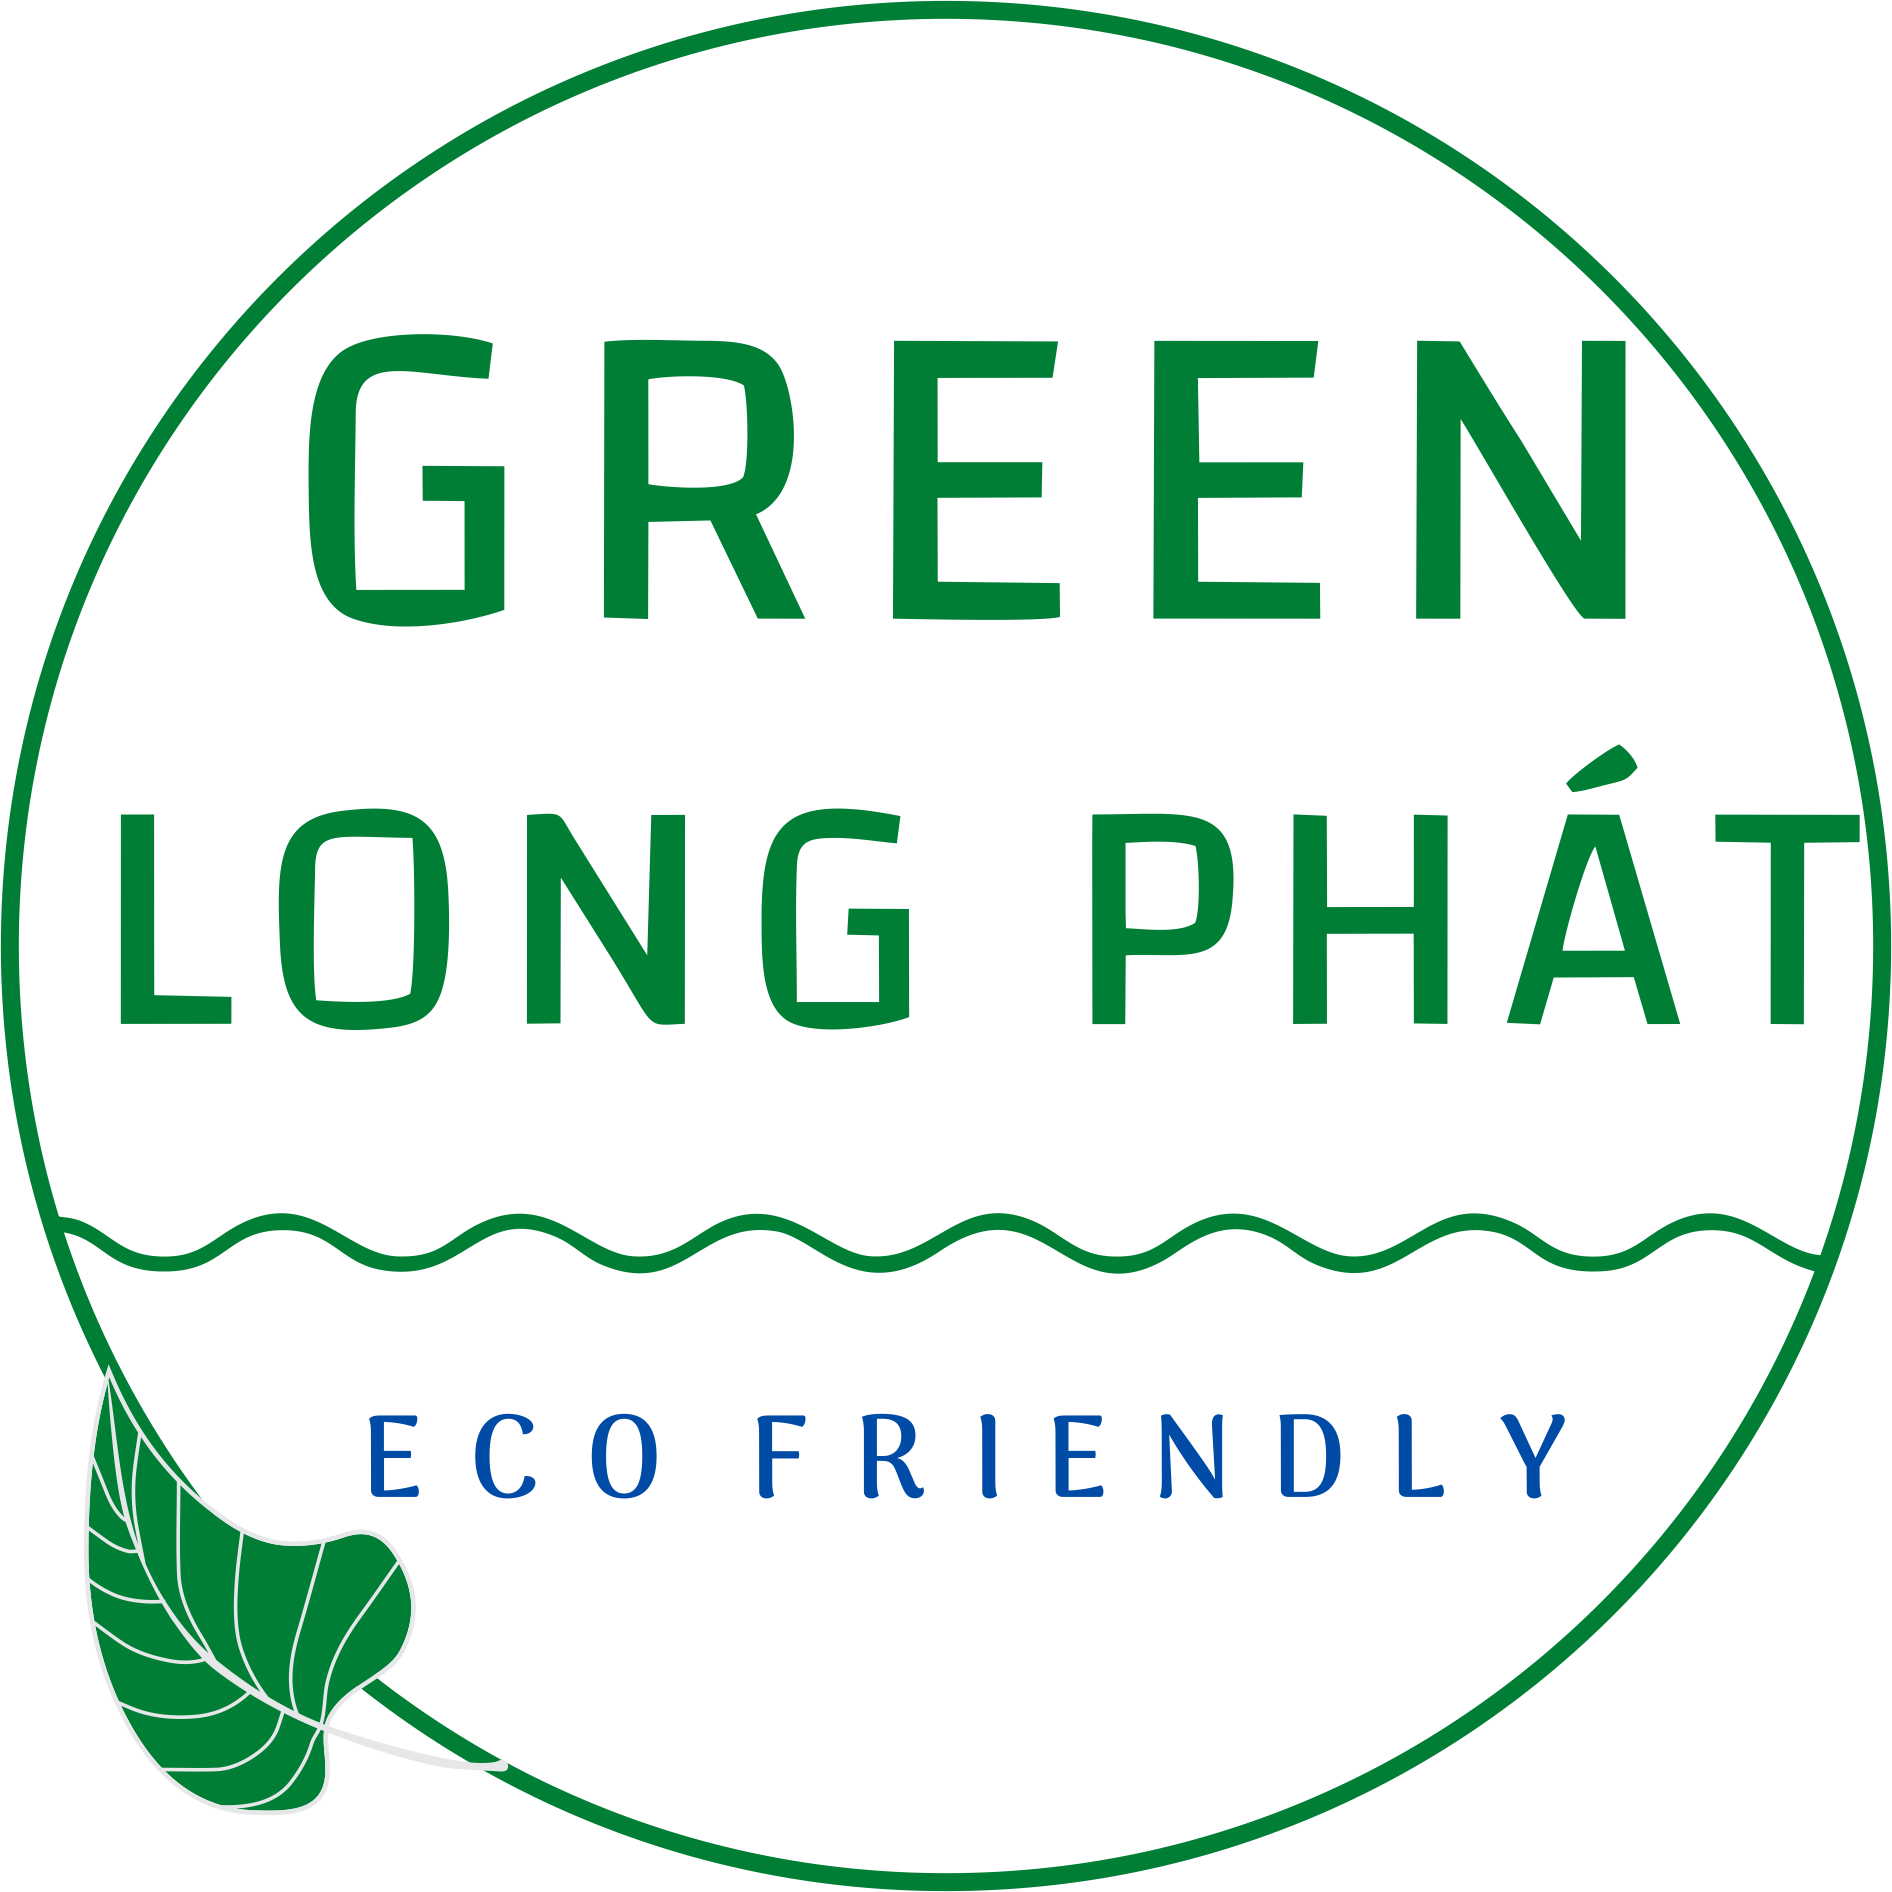 GREEN LONG PHÁT